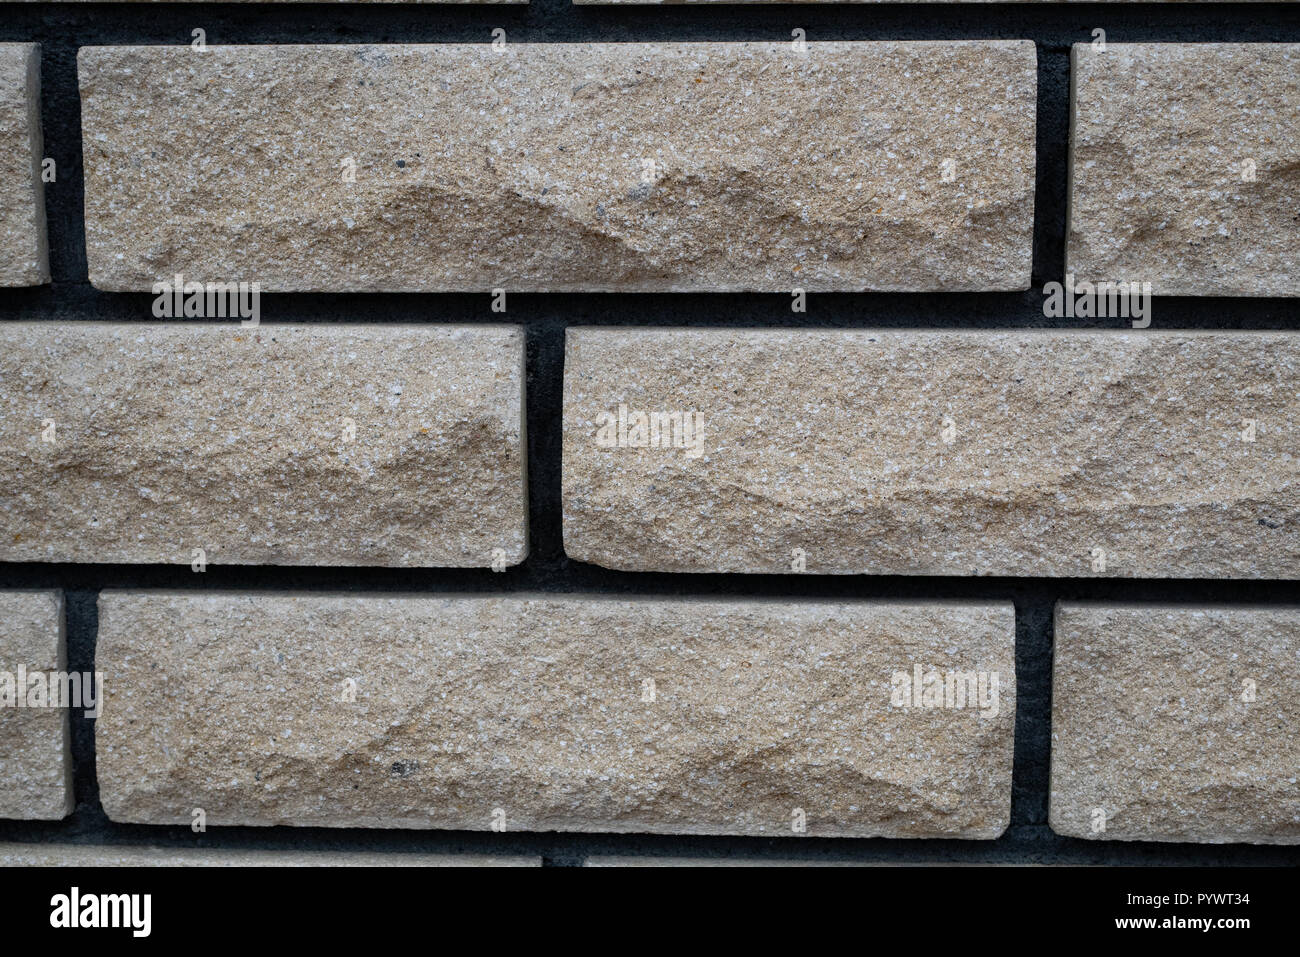 close up wall made of accurate white stone bricks tiles with